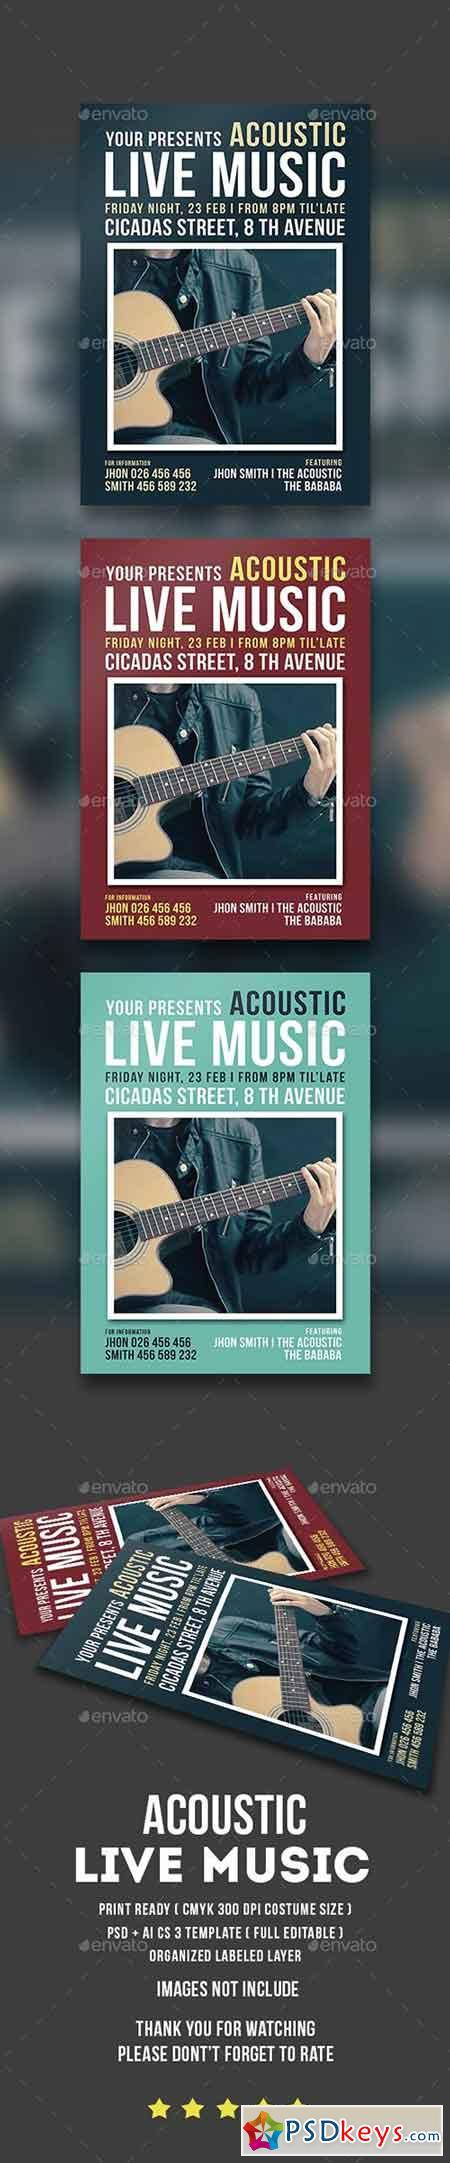 Acoustic Live Music Flyer 14604101